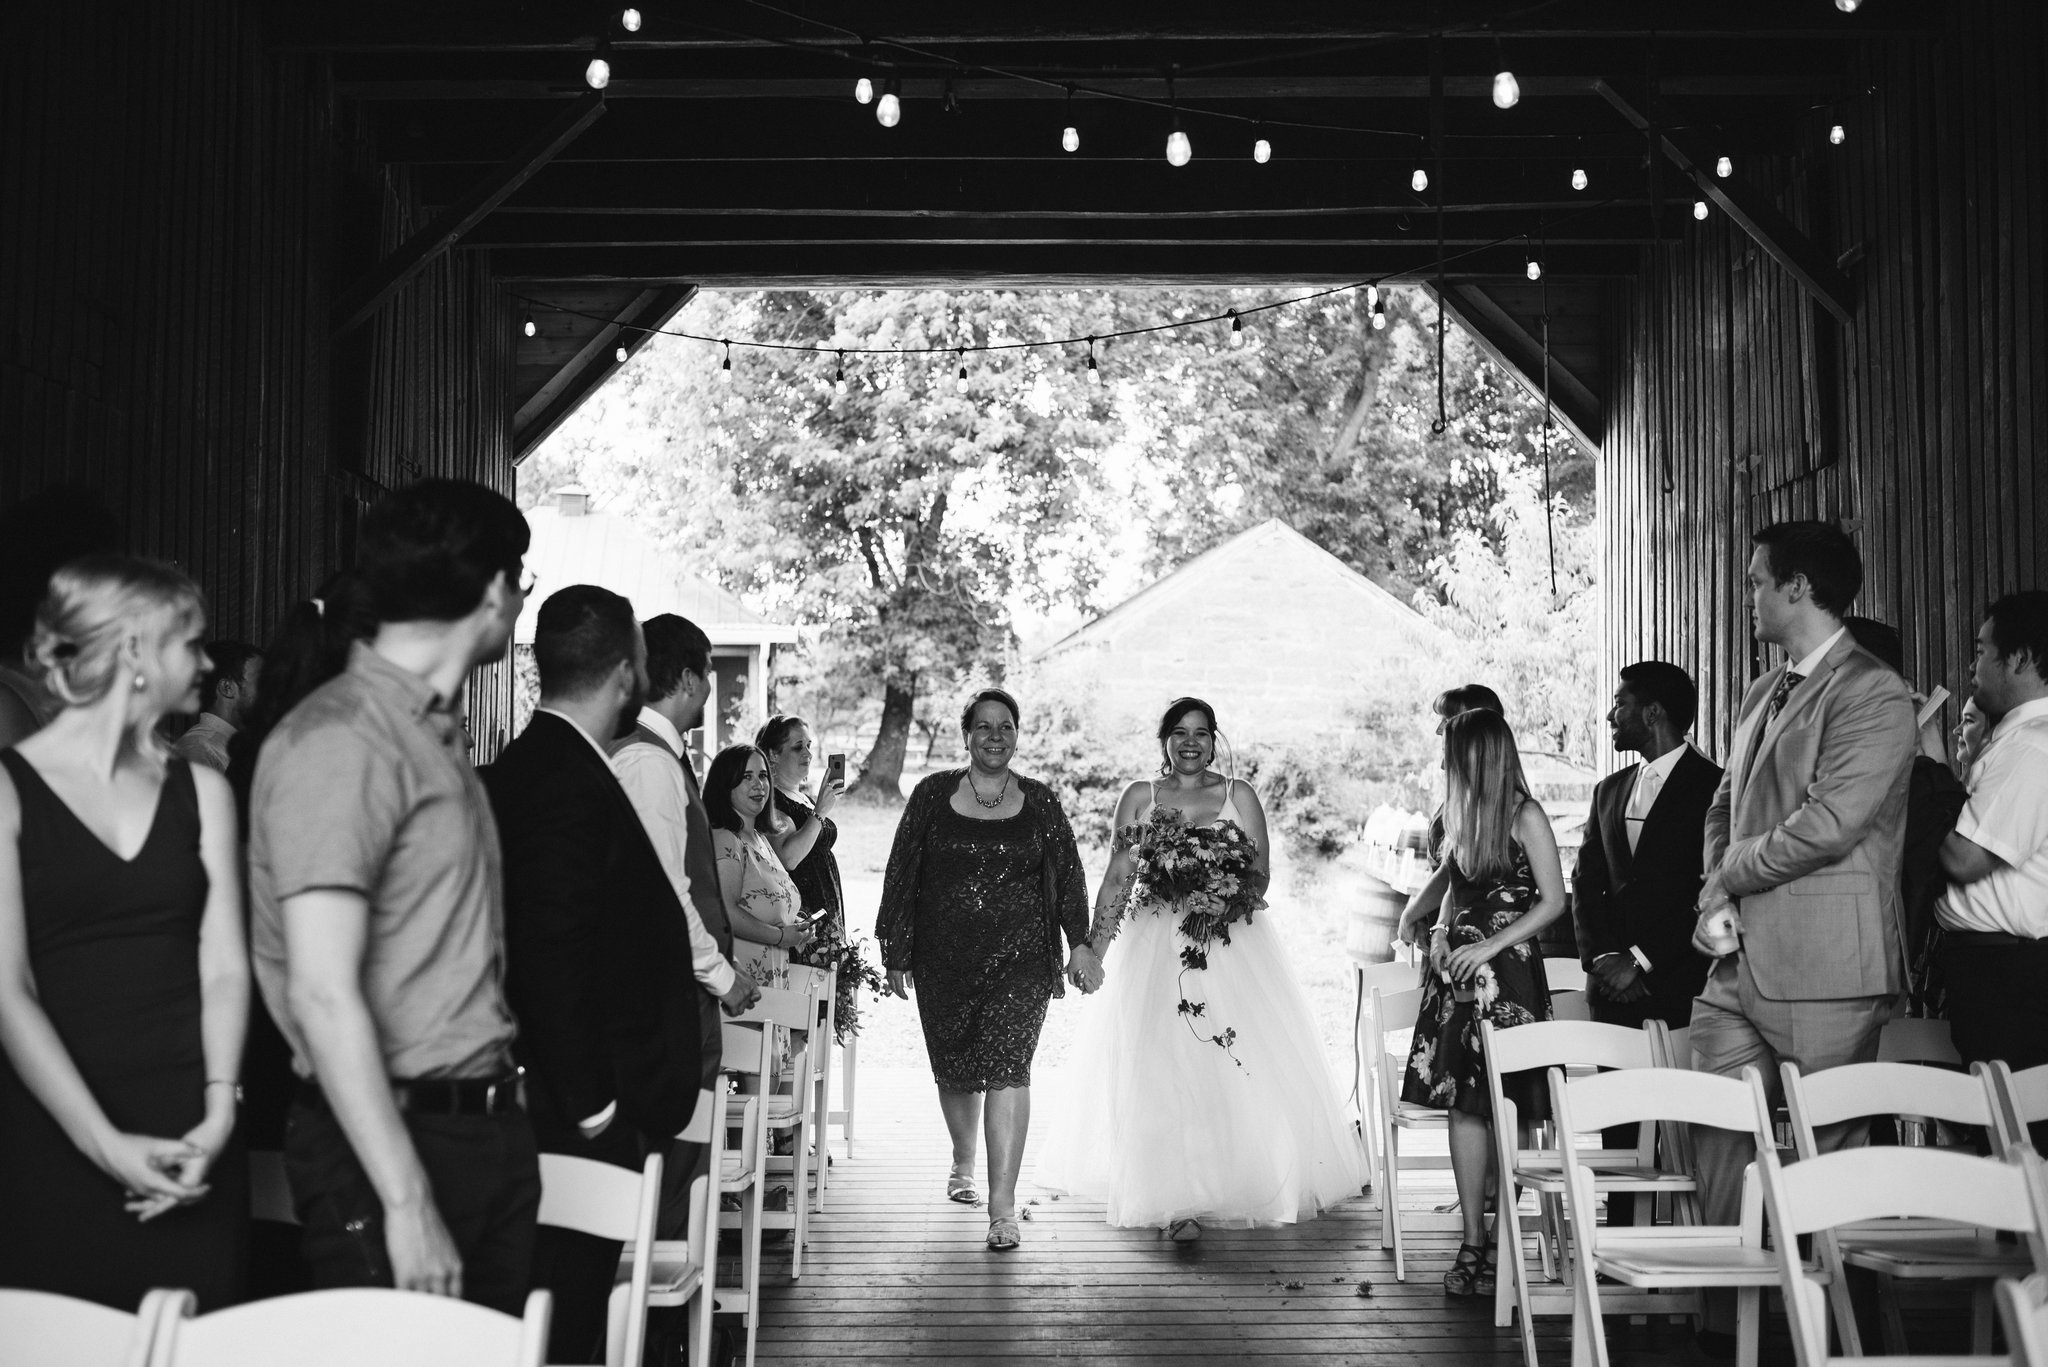 Rocklands Farm, Maryland, Intimate Wedding, Baltimore Wedding Photographer, Sungold Flower Co, Rustic, Romantic, Barn Wedding, Bride Walking Down Aisle with Mother, Black and White Photo